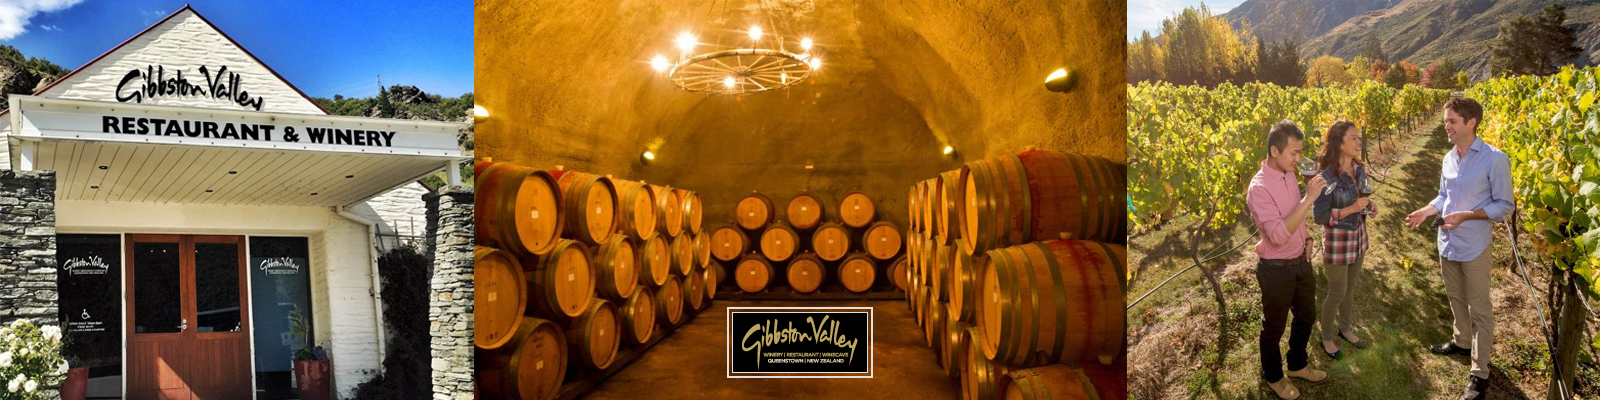 banner-gibbston-valley-winery.jpg